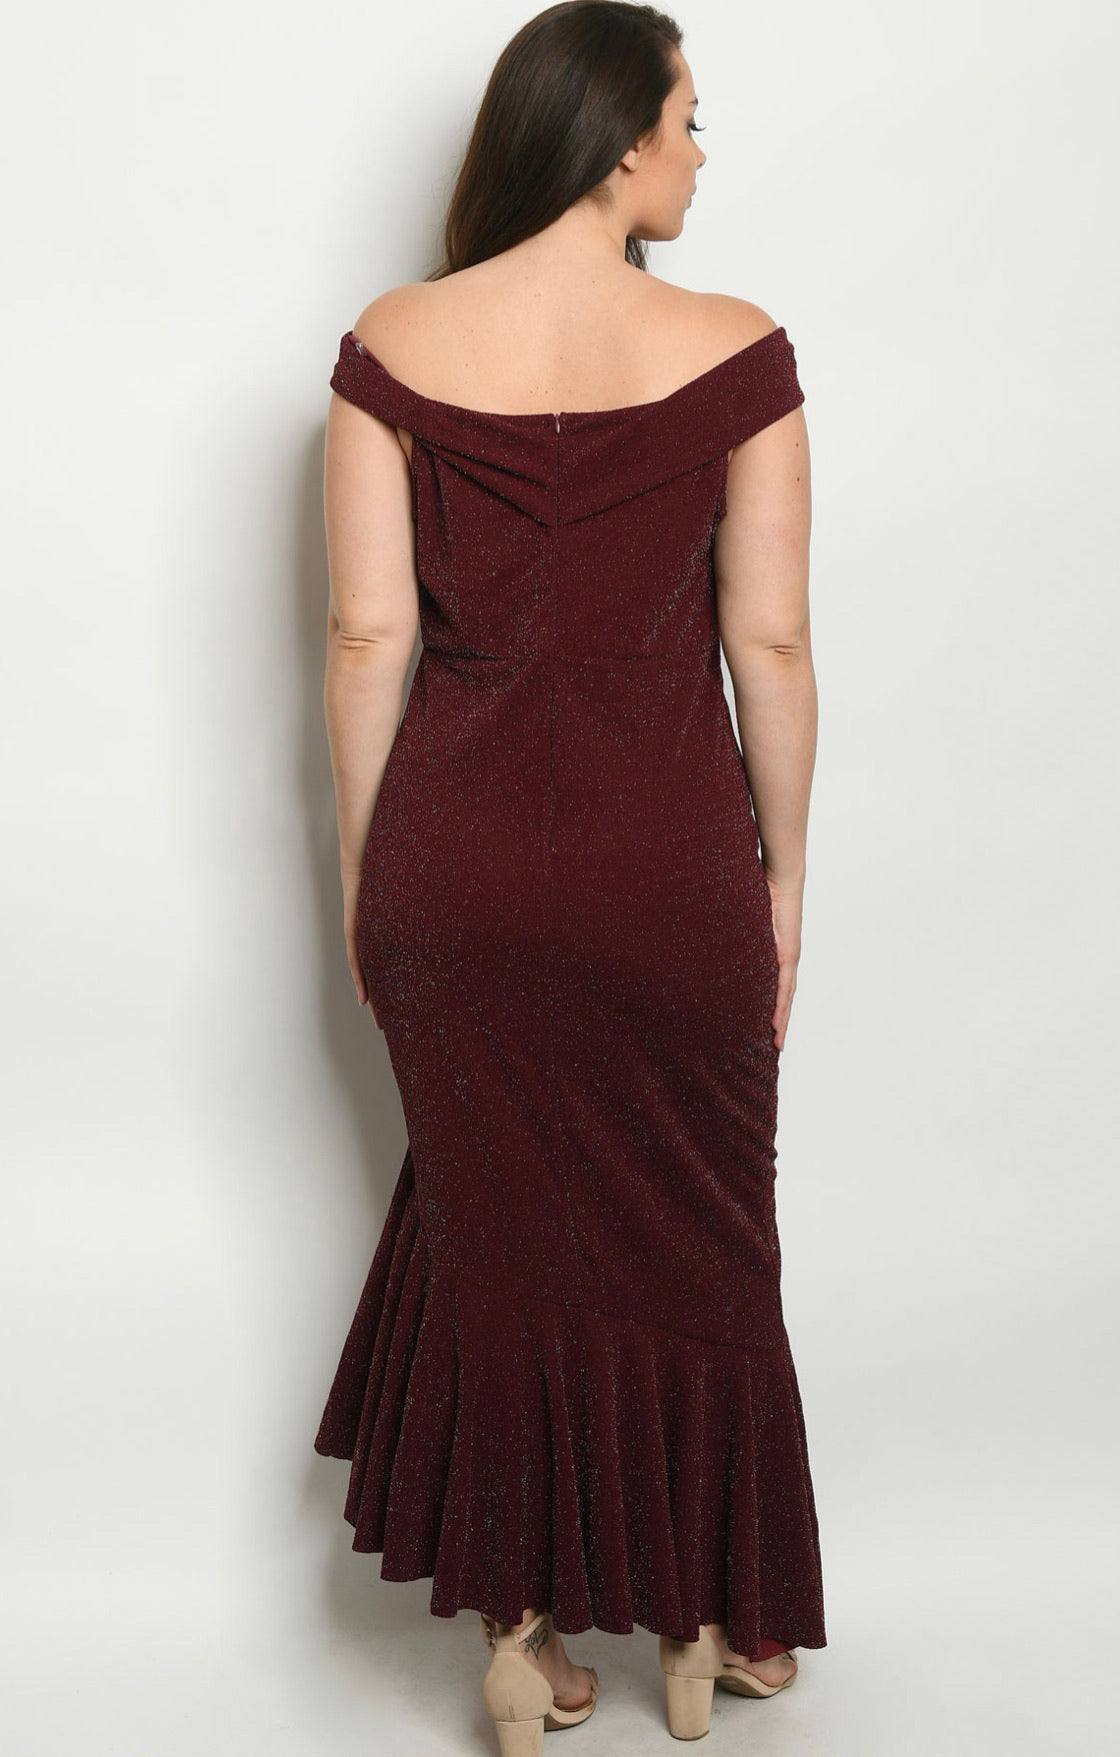 Burgundy Raza Plus Size Dress